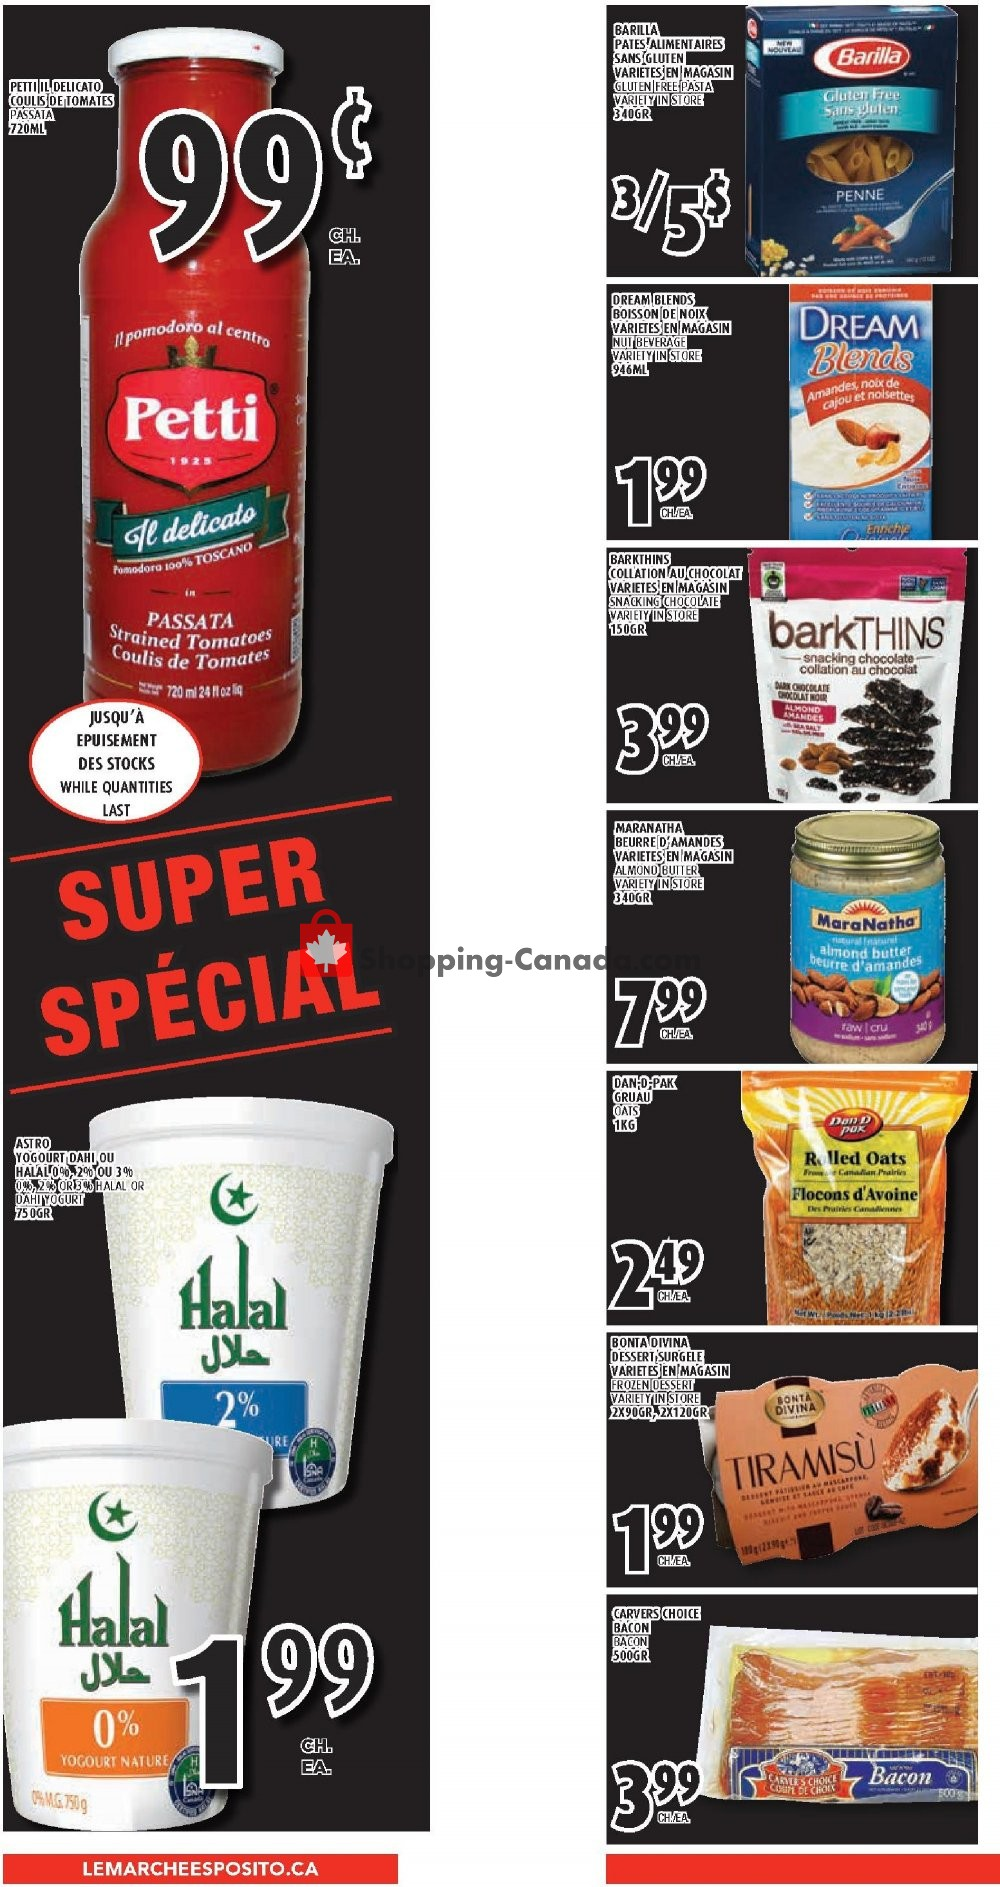 Flyer Le Marché Esposito Canada - from Thursday March 7, 2019 to Wednesday March 13, 2019